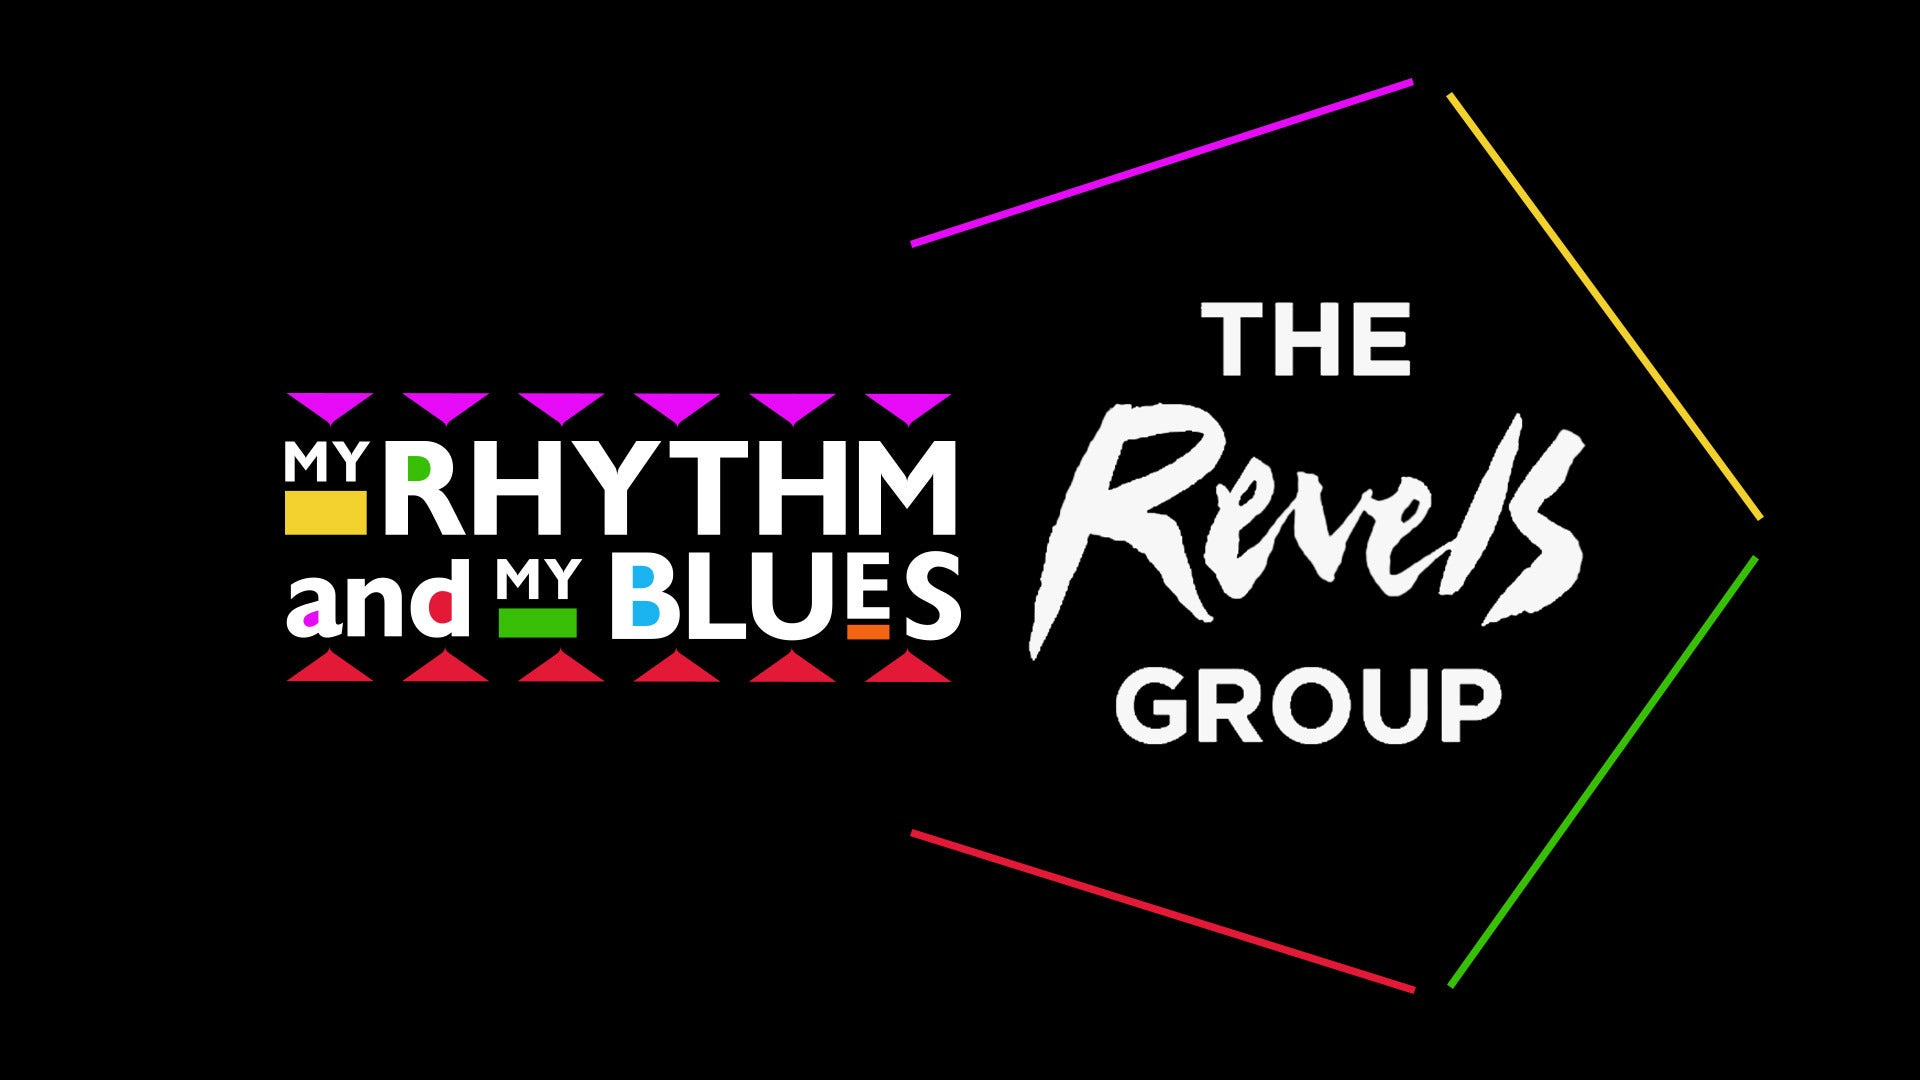 My Rhythm and My Blues: The Revels Group